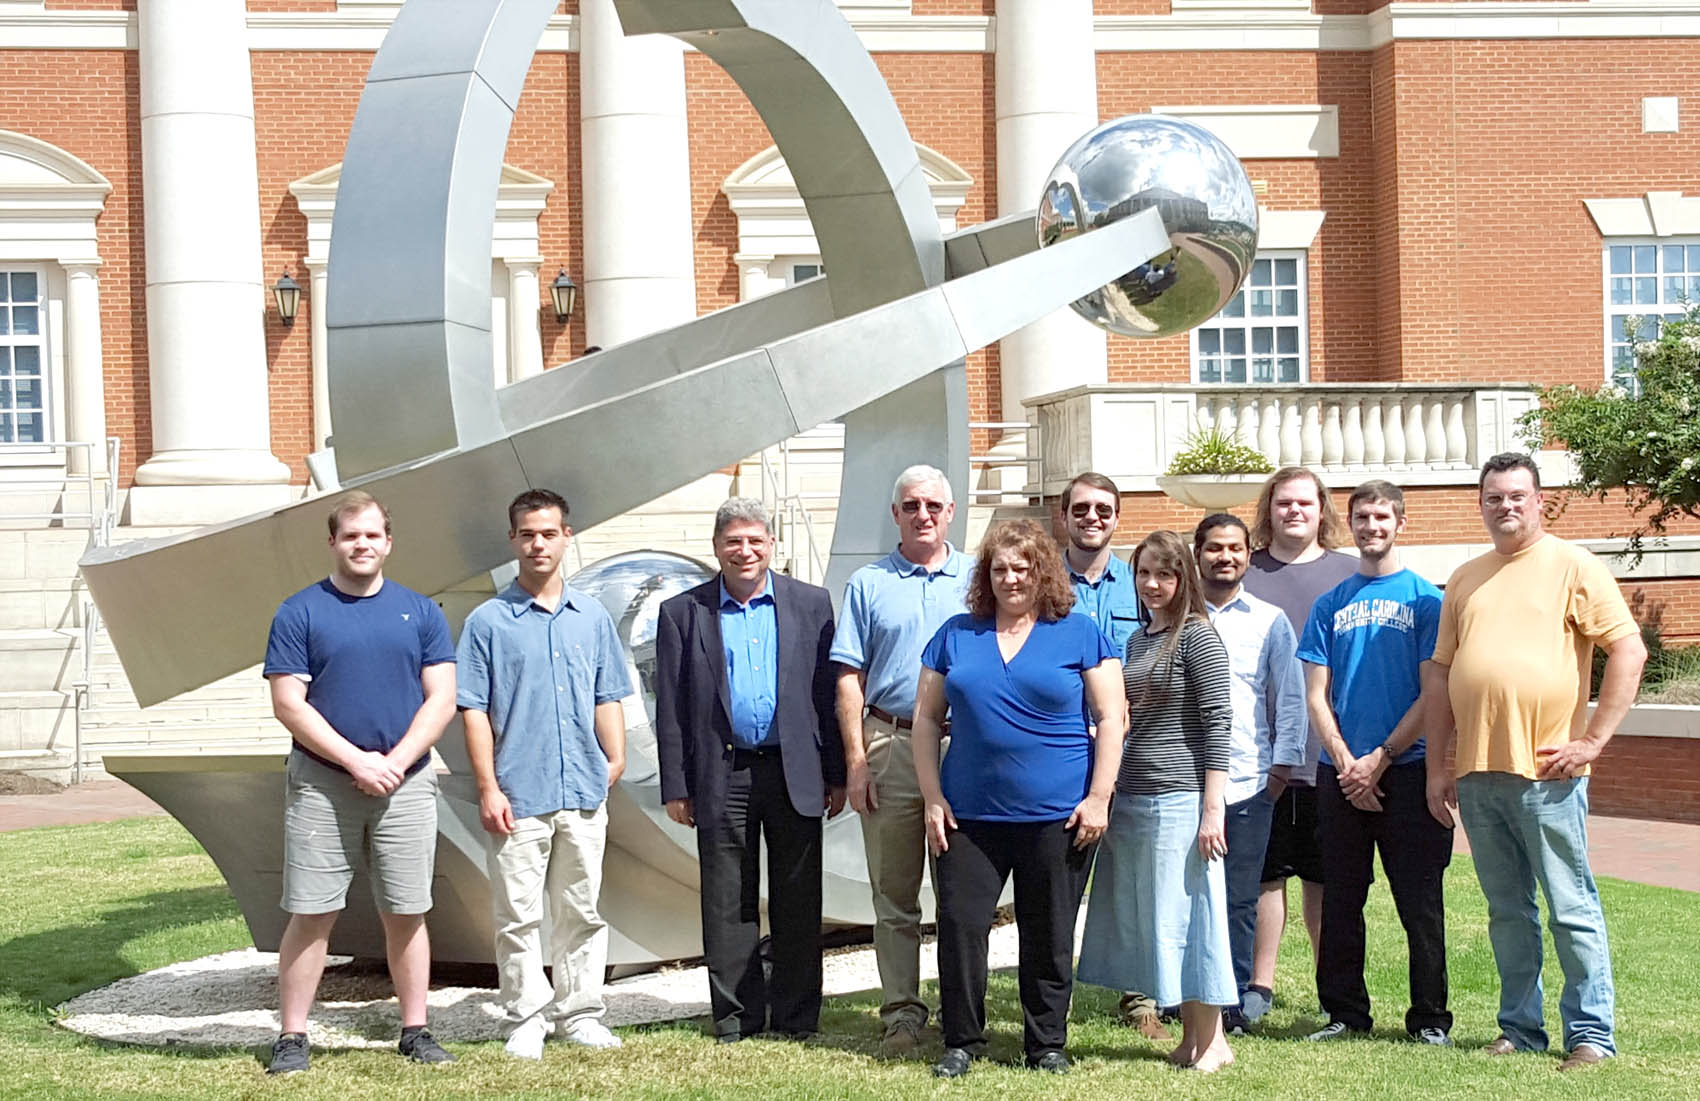 Click to enlarge,  Touring the Center for Optoelectronics and Optical Communications on the University of North Carolina at Charlotte's campus were, left to right: Jeremiah Roberts, Thomas Martin, Dr. Chrys Panayiotou, Gary Beasley, Katie Hall, David Pope, Angela Humphries, Nishal Patel, Joshua Roberts, Nathanael Turley, and Scott Williams.